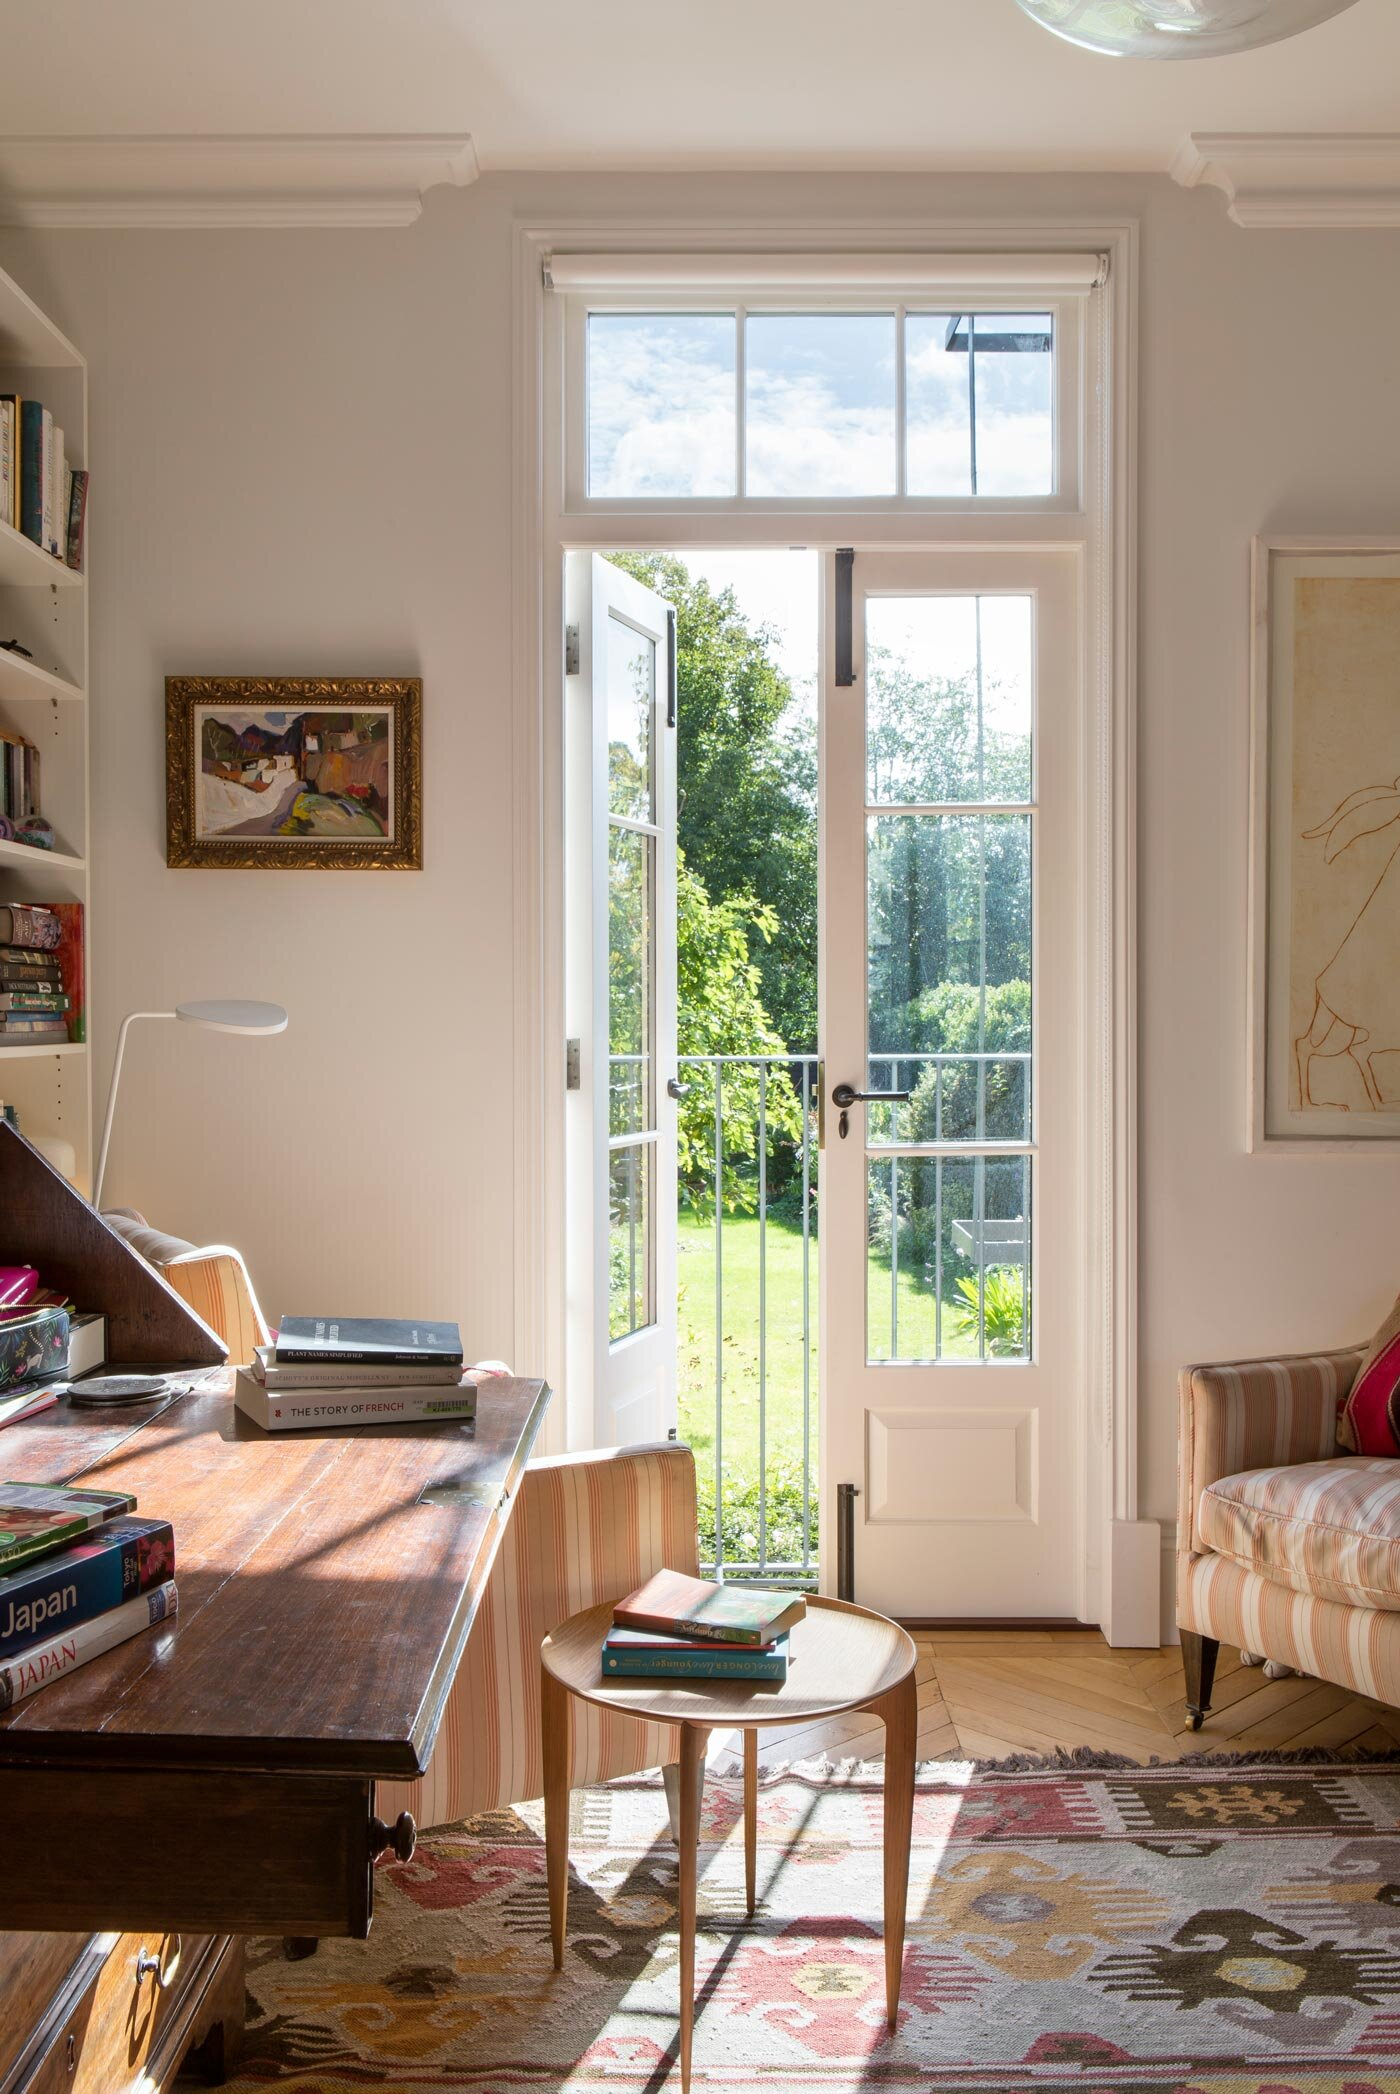 rogue designs french_doors_oxford.jpg